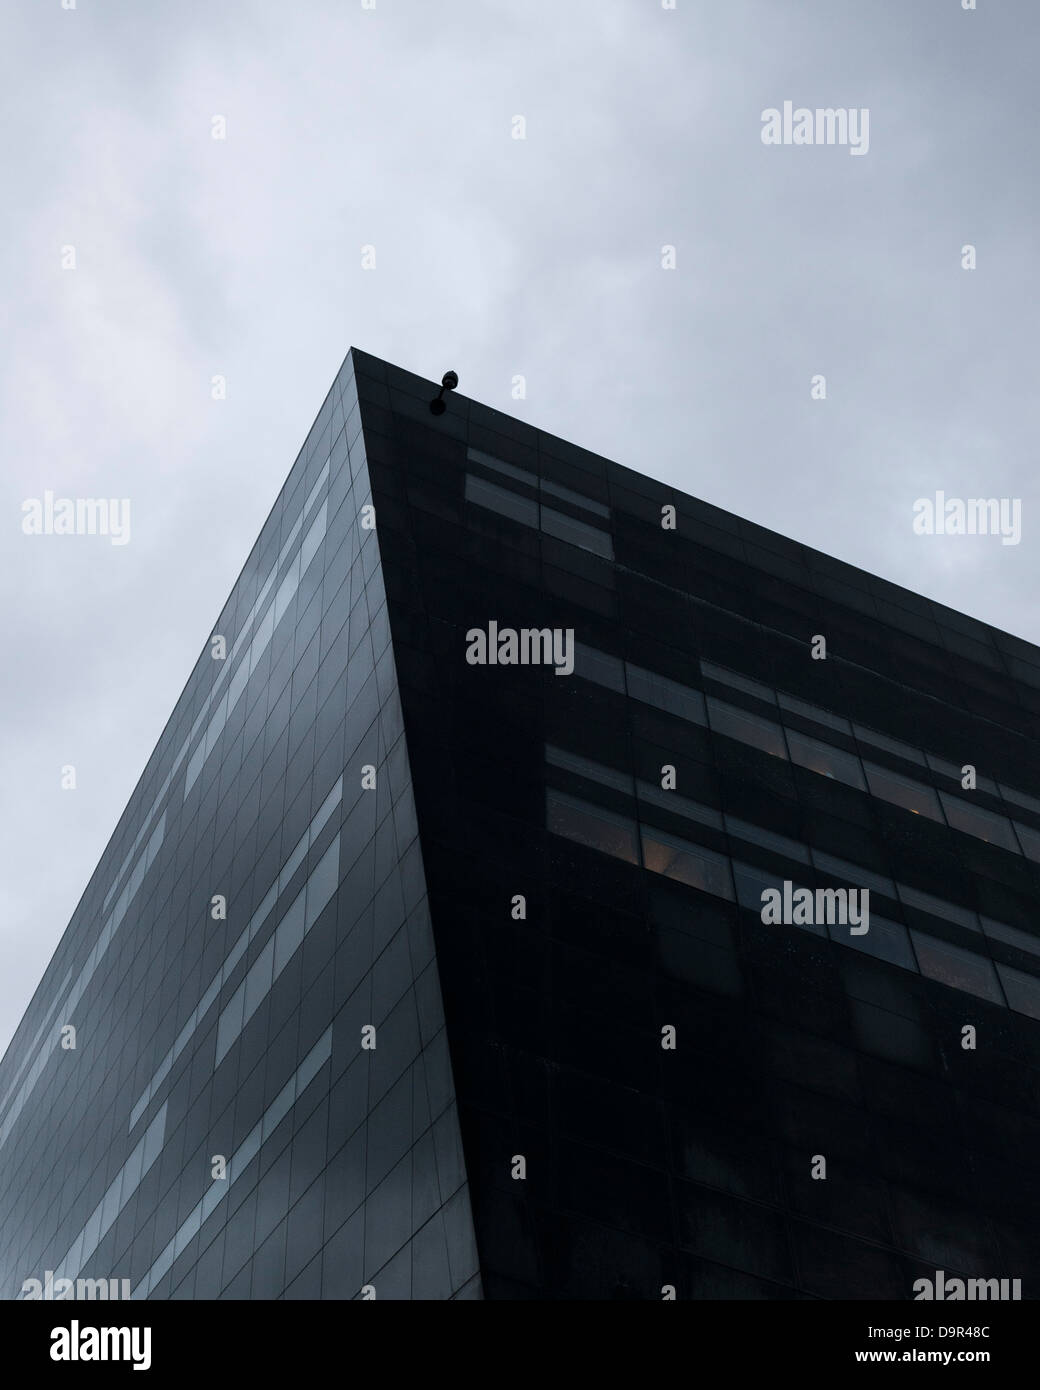 The Black Diamond - The Royal Danish Library, Copenhagen, Denmark. Architect: Schmidt Hammer & Lassen Ltd, 1999. Stock Photo